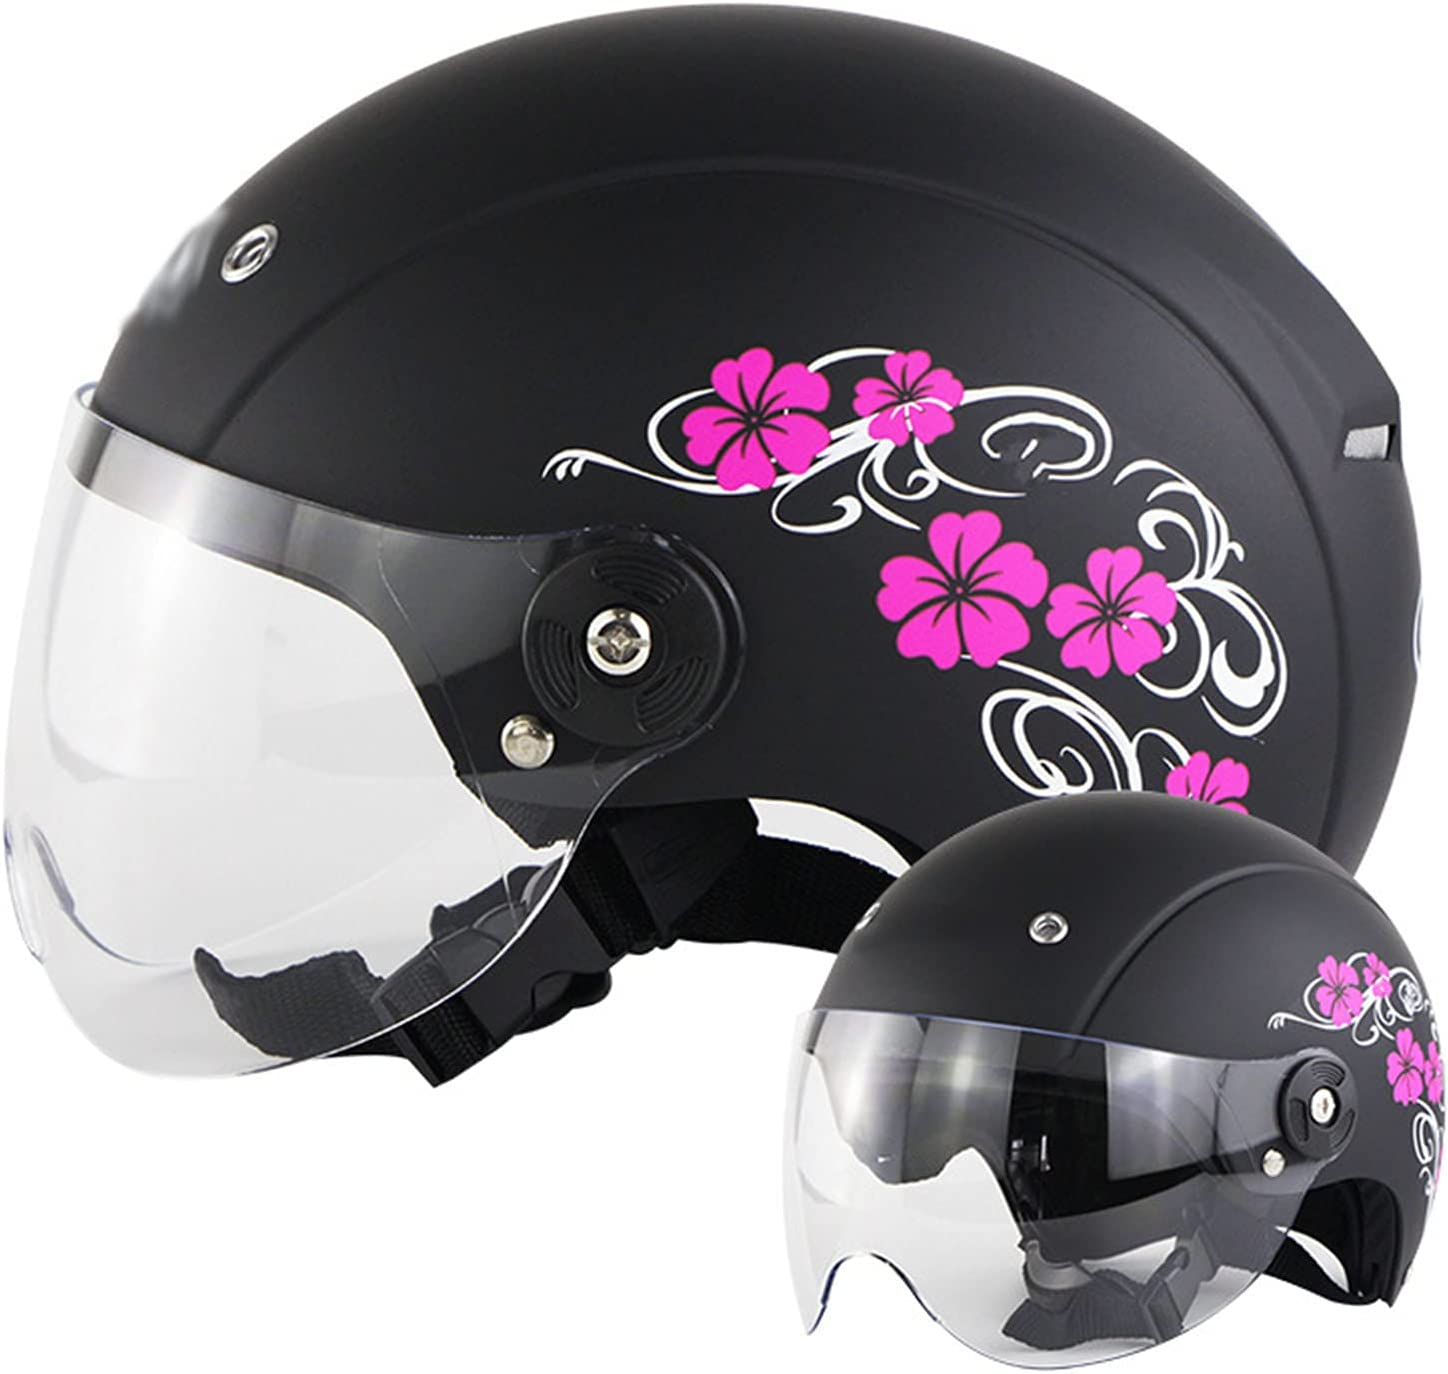 Max 89% OFF GAOZ Vintage store Open Face Half Helmet Motorcycle for Motocr Cycling